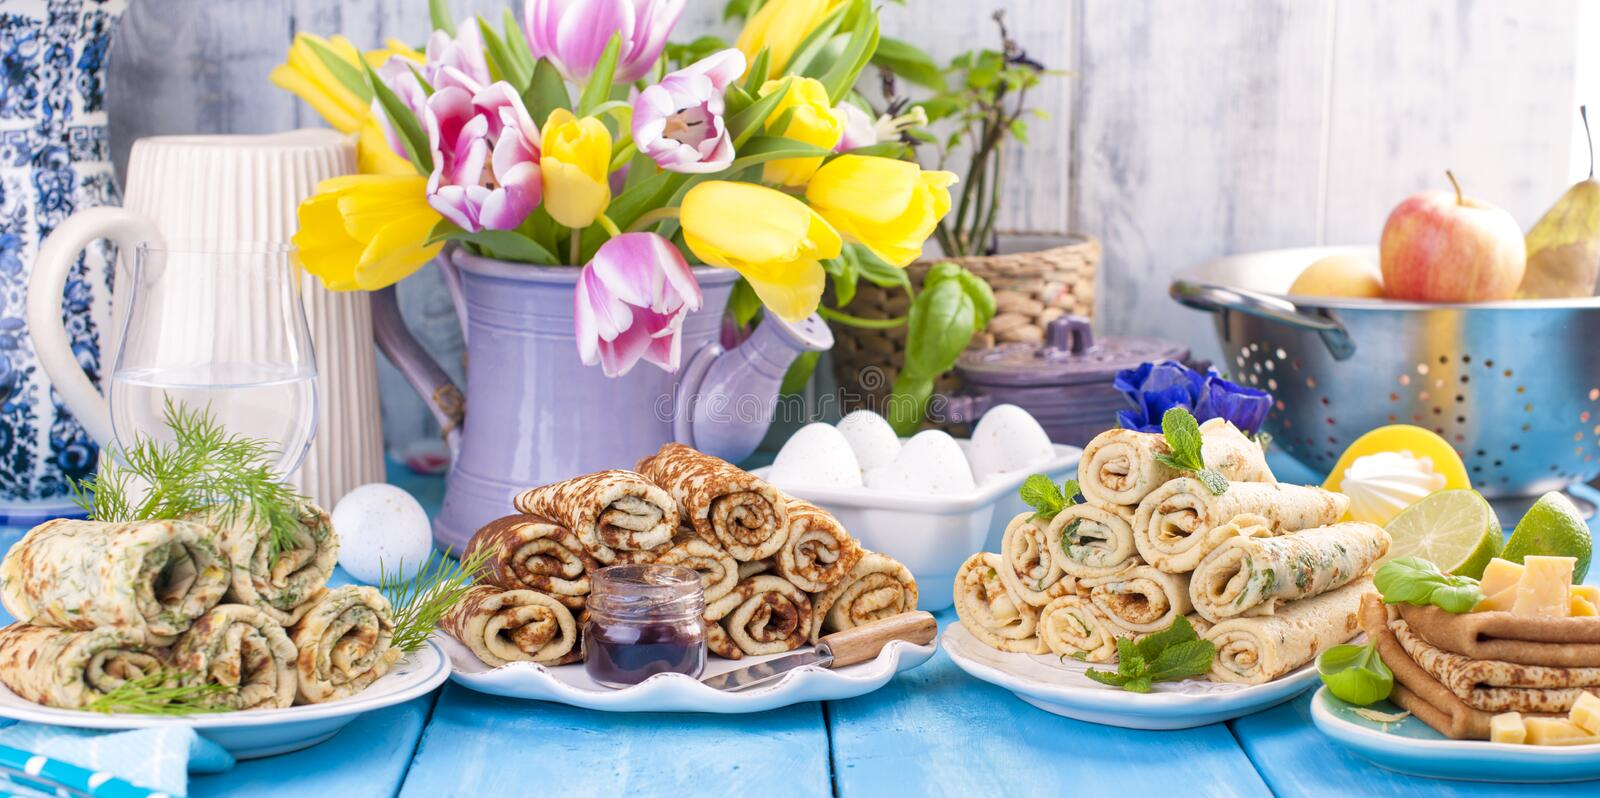 Many pancakes with different fillings and flavors. Delicious traditional food in the spring. Homemade baking. Flowers and royalty free stock photo